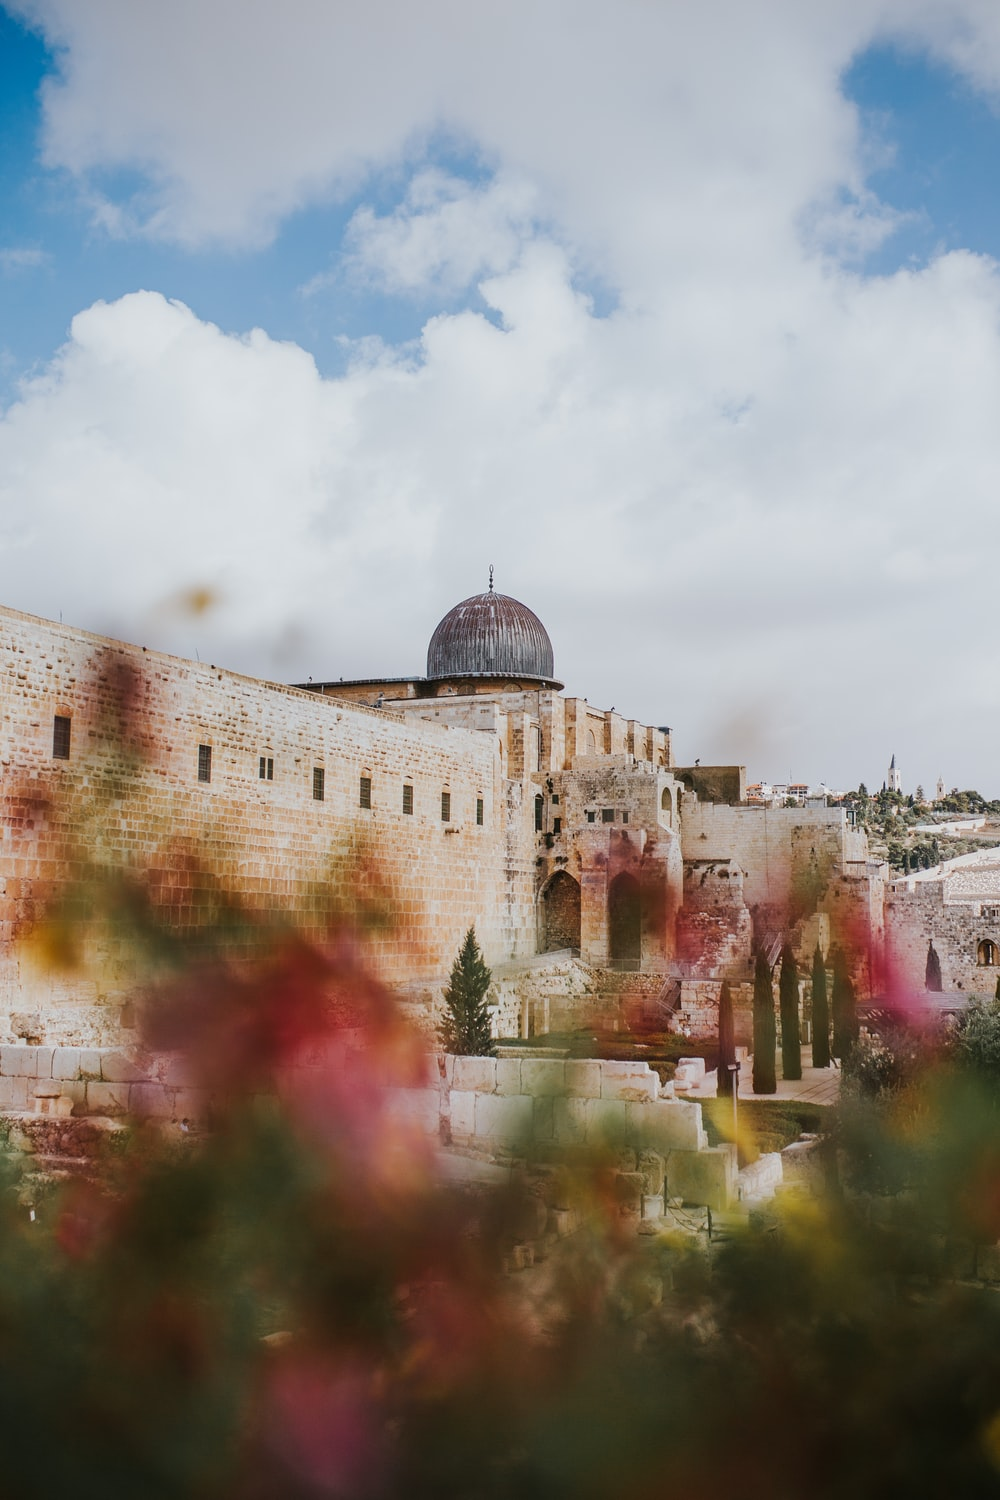 Al Aqsa Mosque Pictures Download Free Images On Unsplash